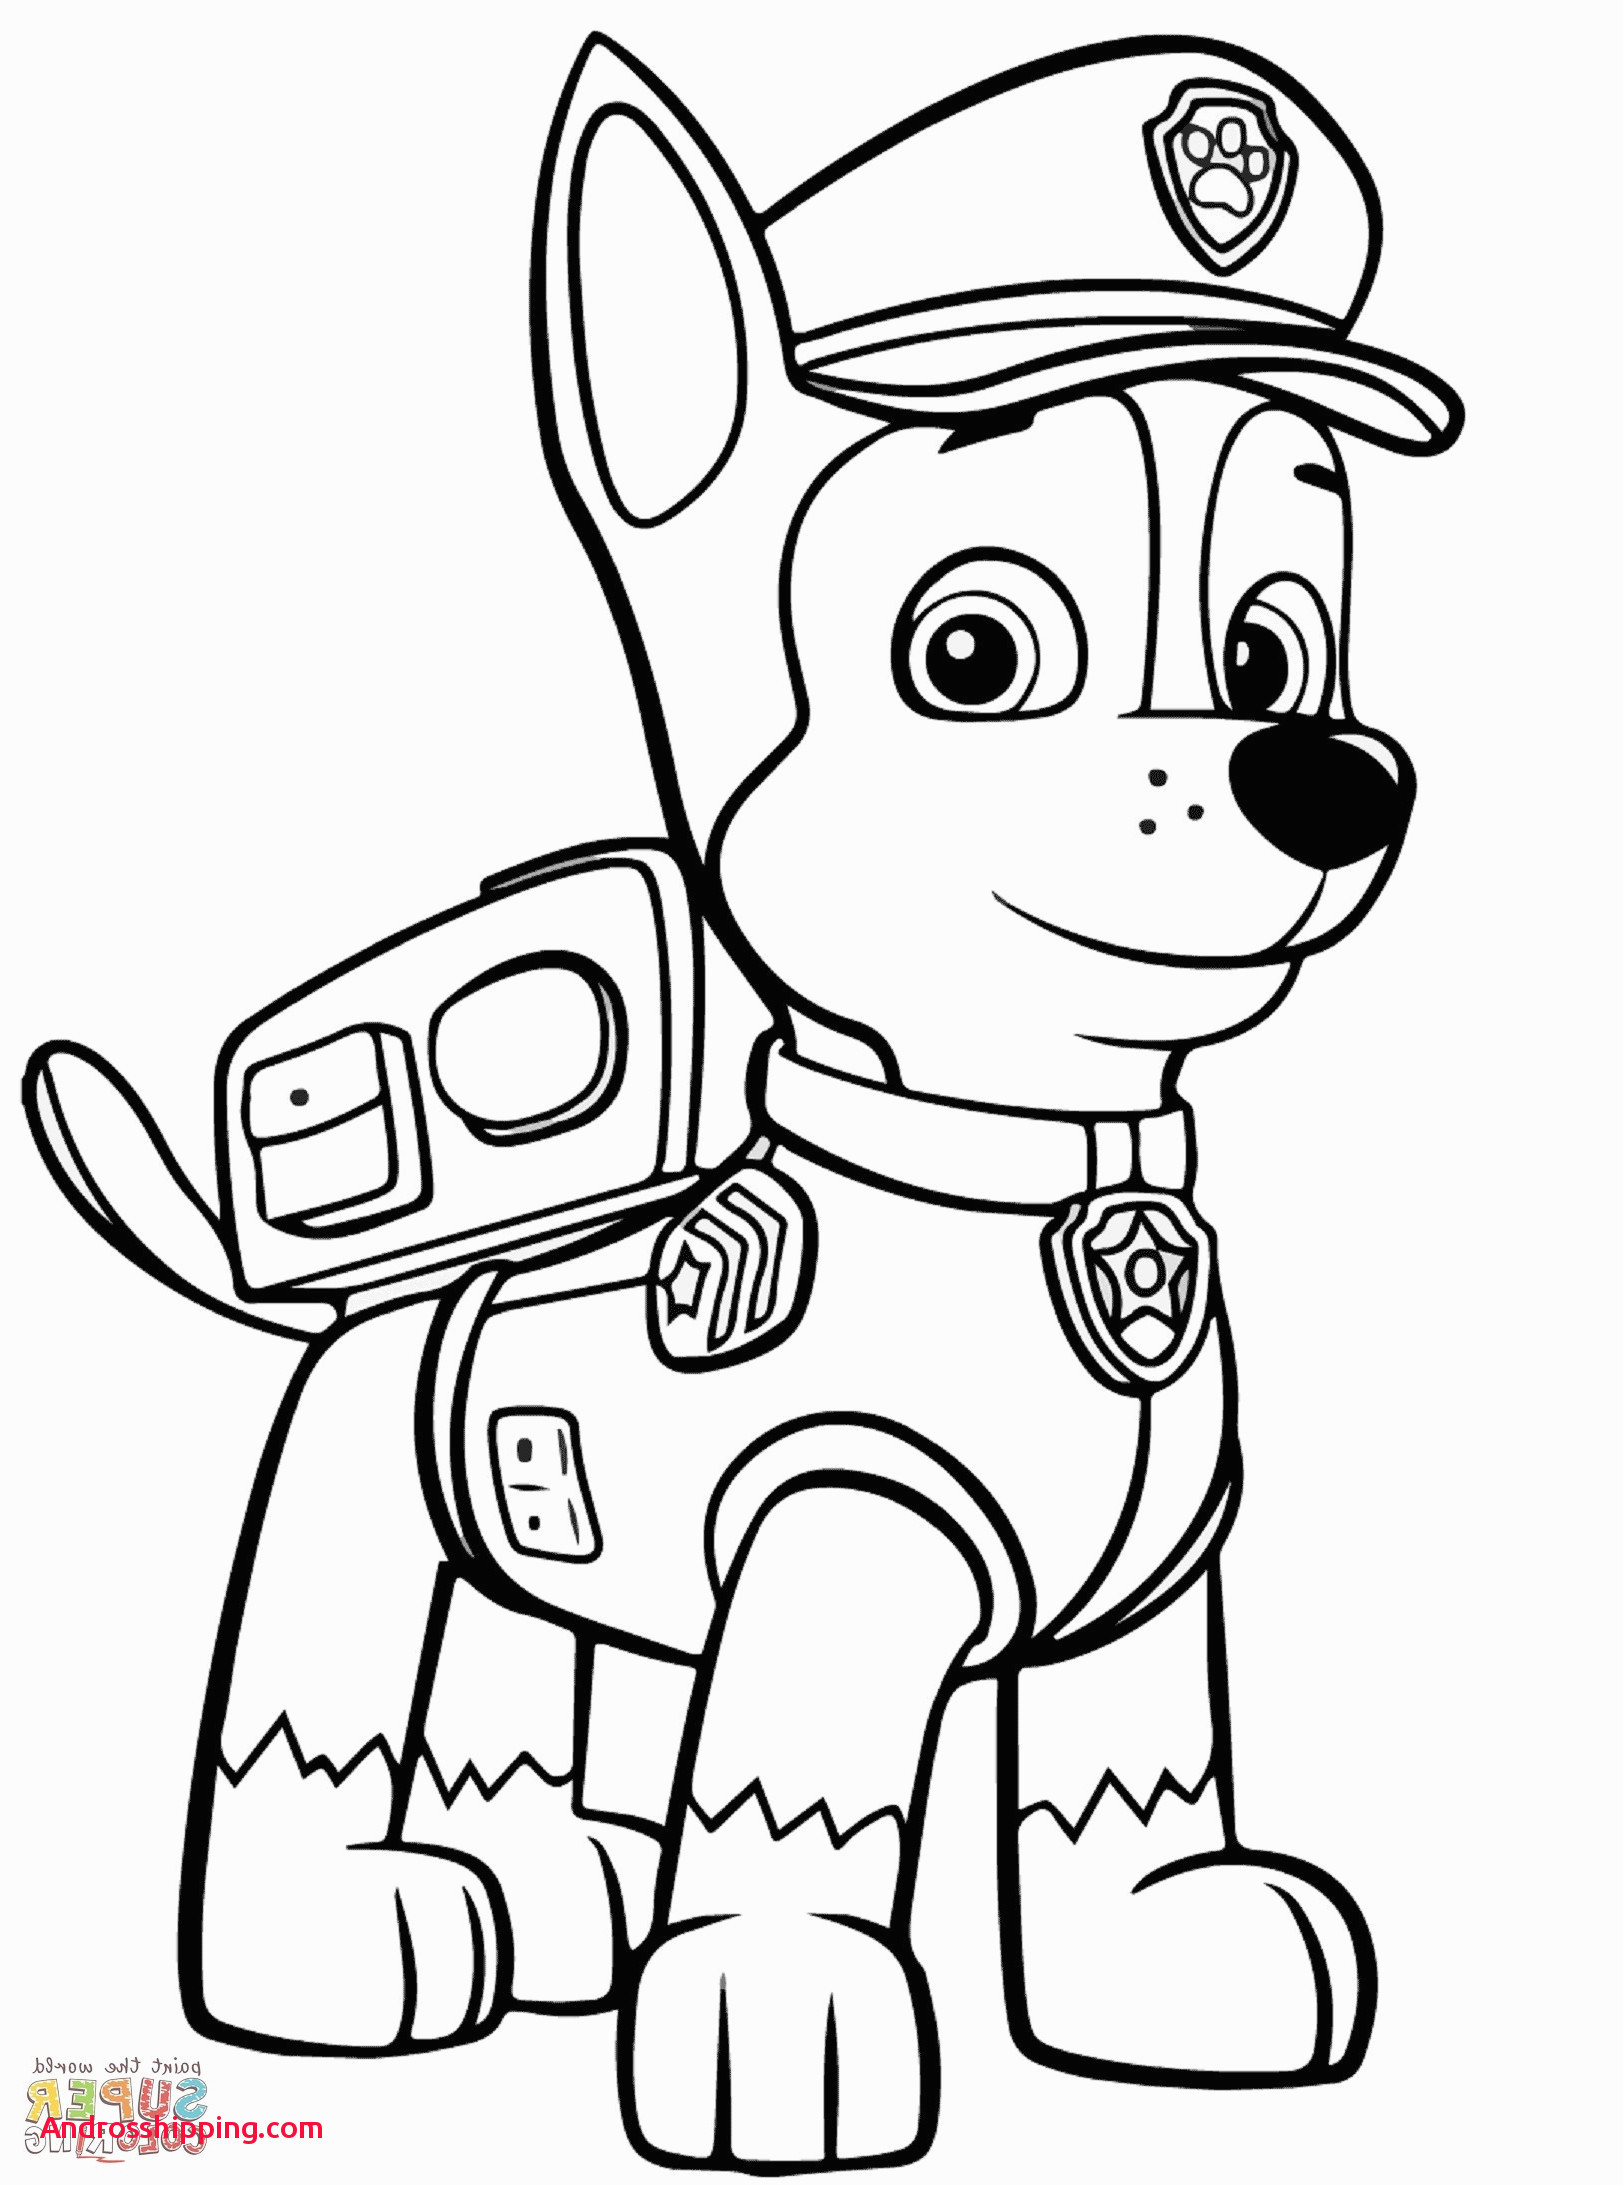 Paw Patrol Ausmalbilder Sky Genial 10 Awesome Coloring Pages Zuma From Paw Patrol androsshipping Genial Bilder